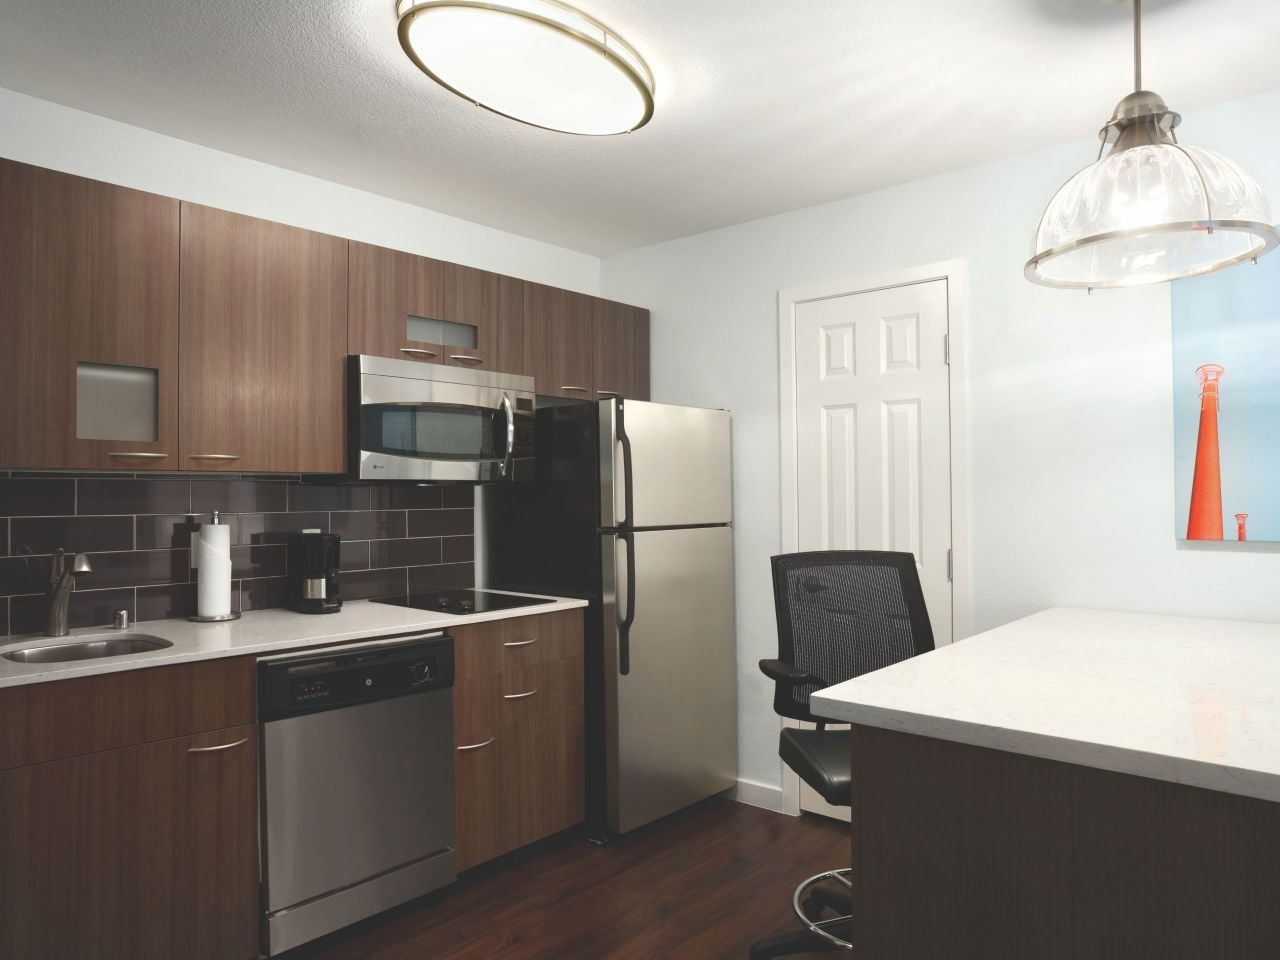 Hyatt House Studio Kitchen